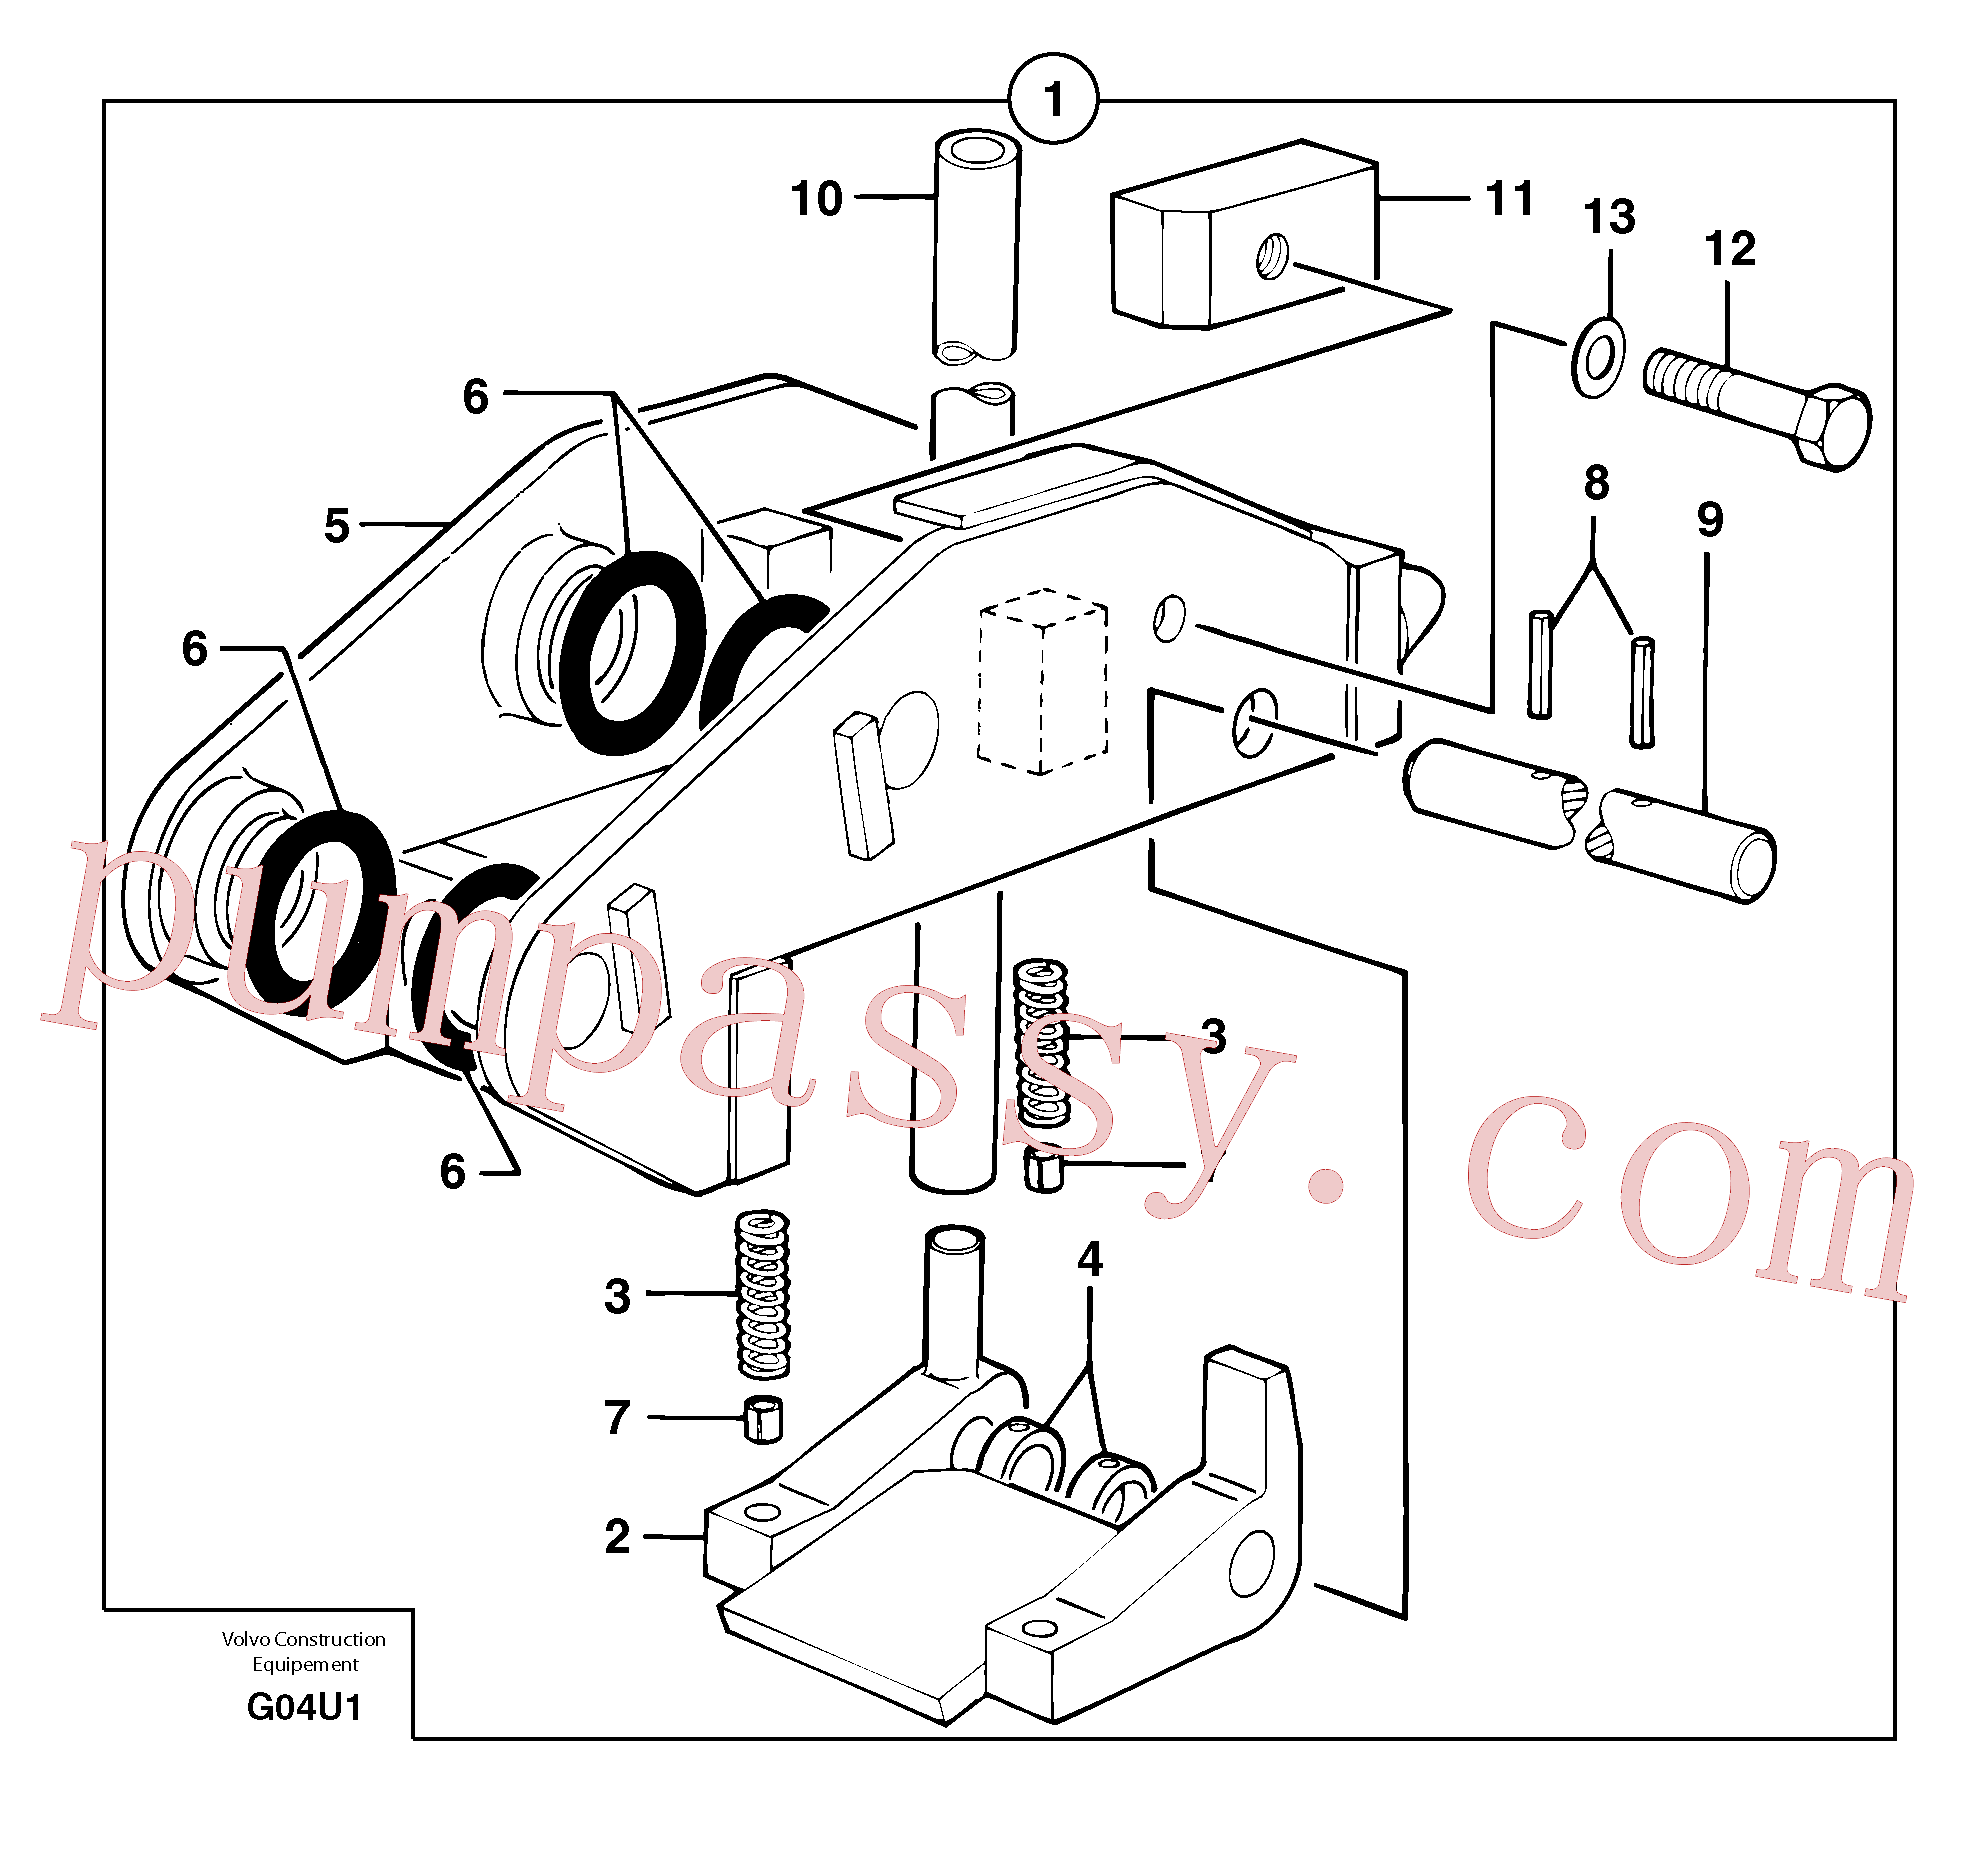 VOE11803844 for Volvo Tool holder / mechanical control(G04U1 assembly)